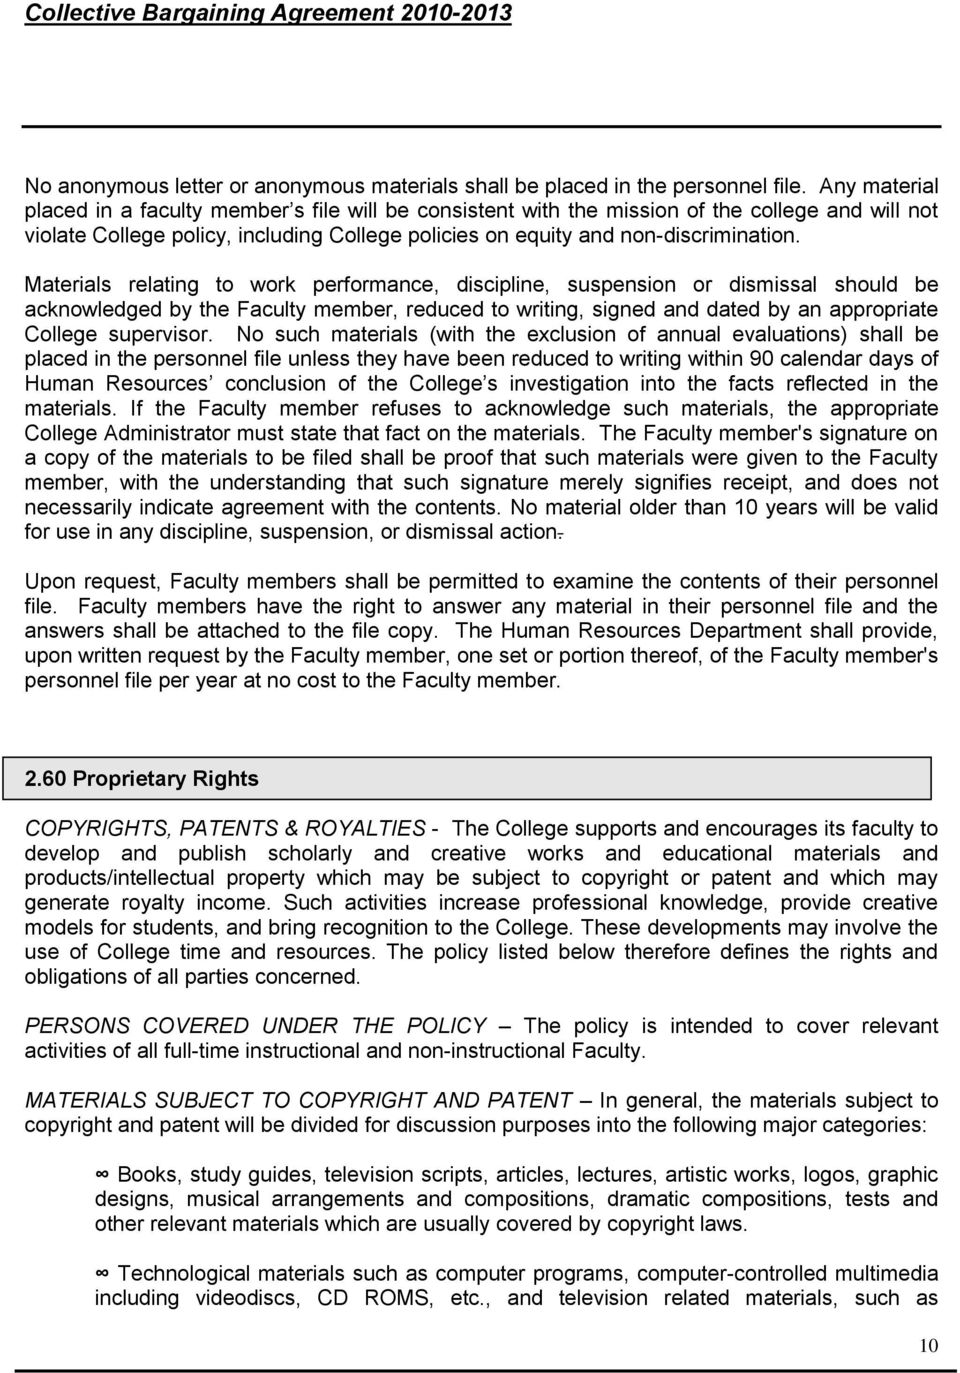 Collective Bargaining Agreement Between The Board Of Trustees Of